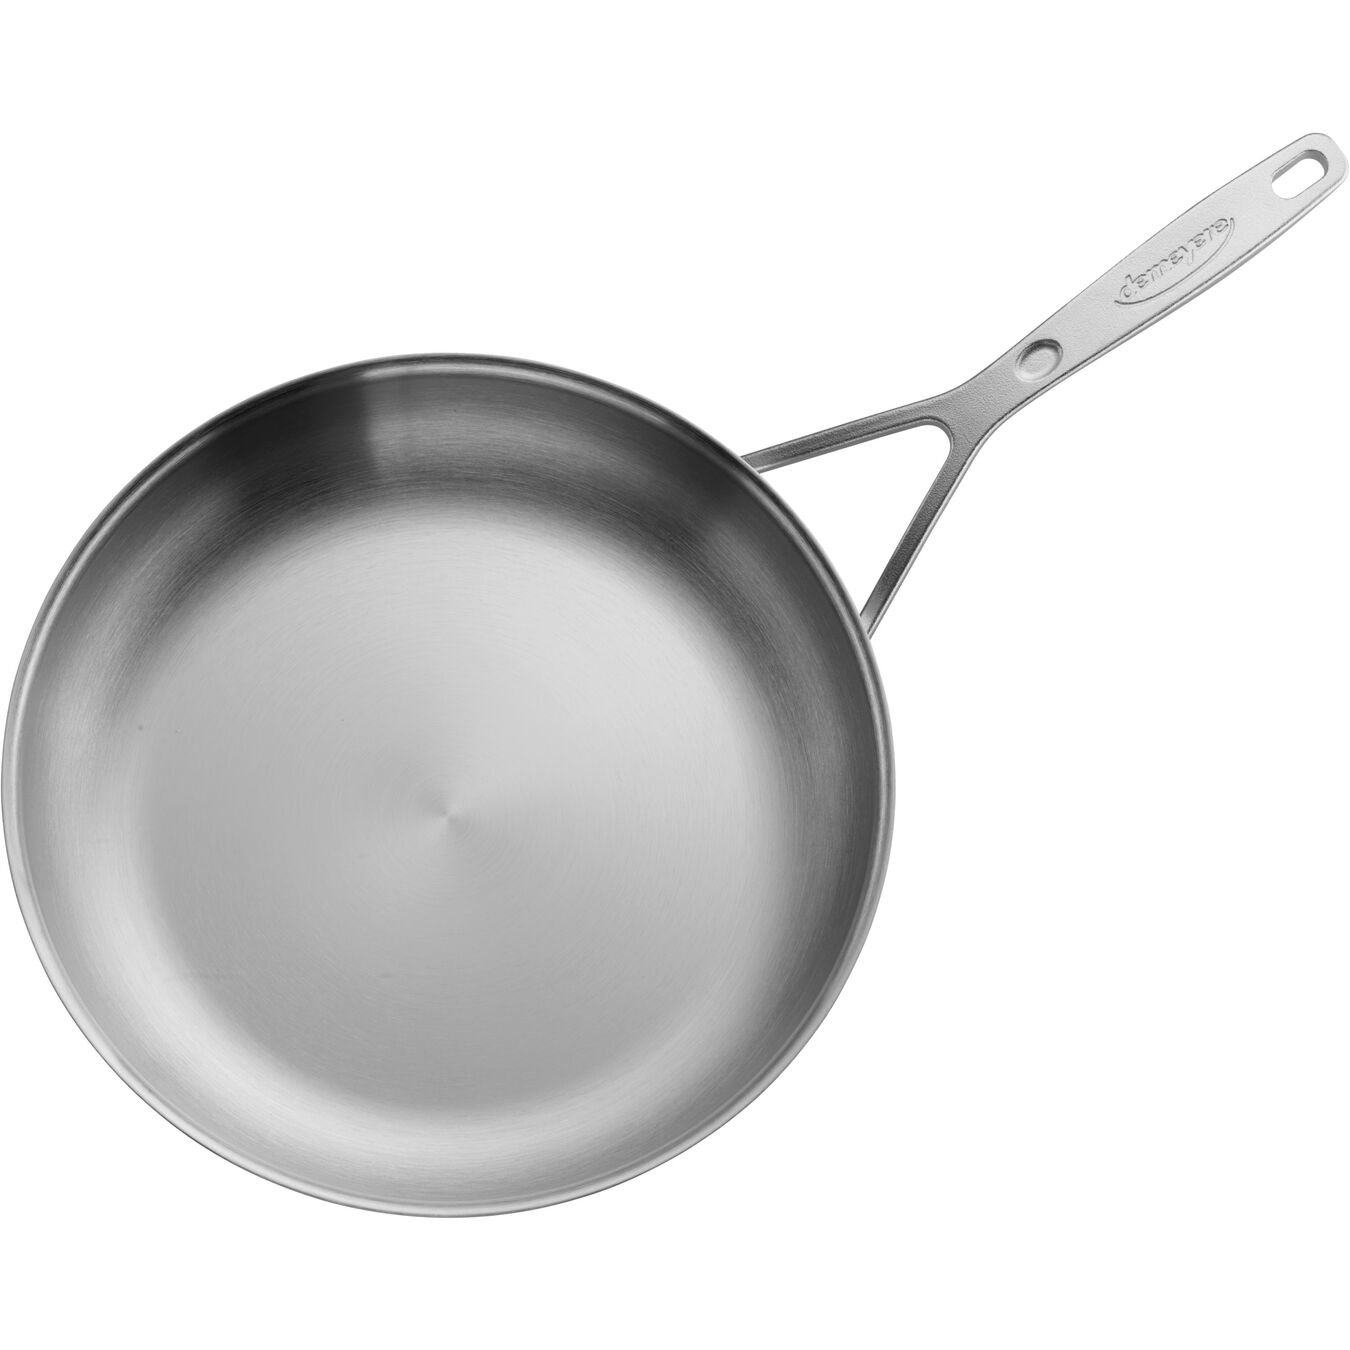 11-inch, 18/10 Stainless Steel, Non-stick, Frying pan,,large 4